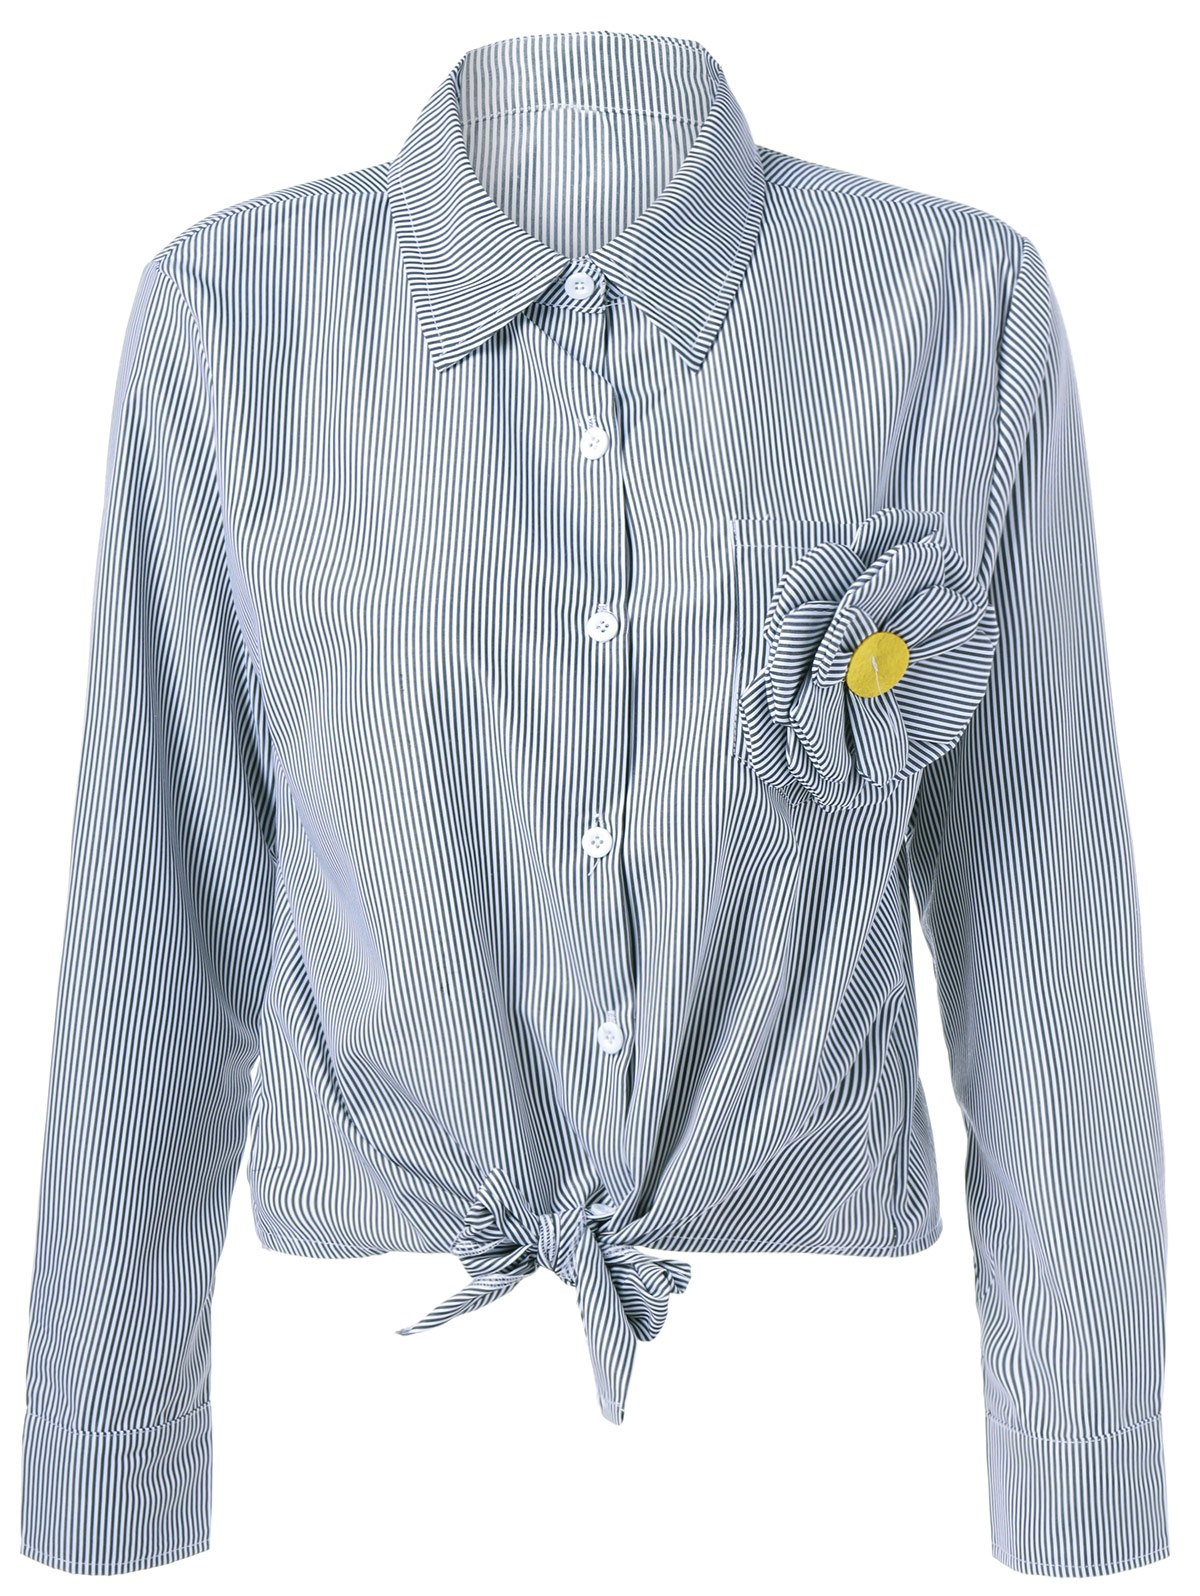 Trendy Appliques Striped Tie Shirt